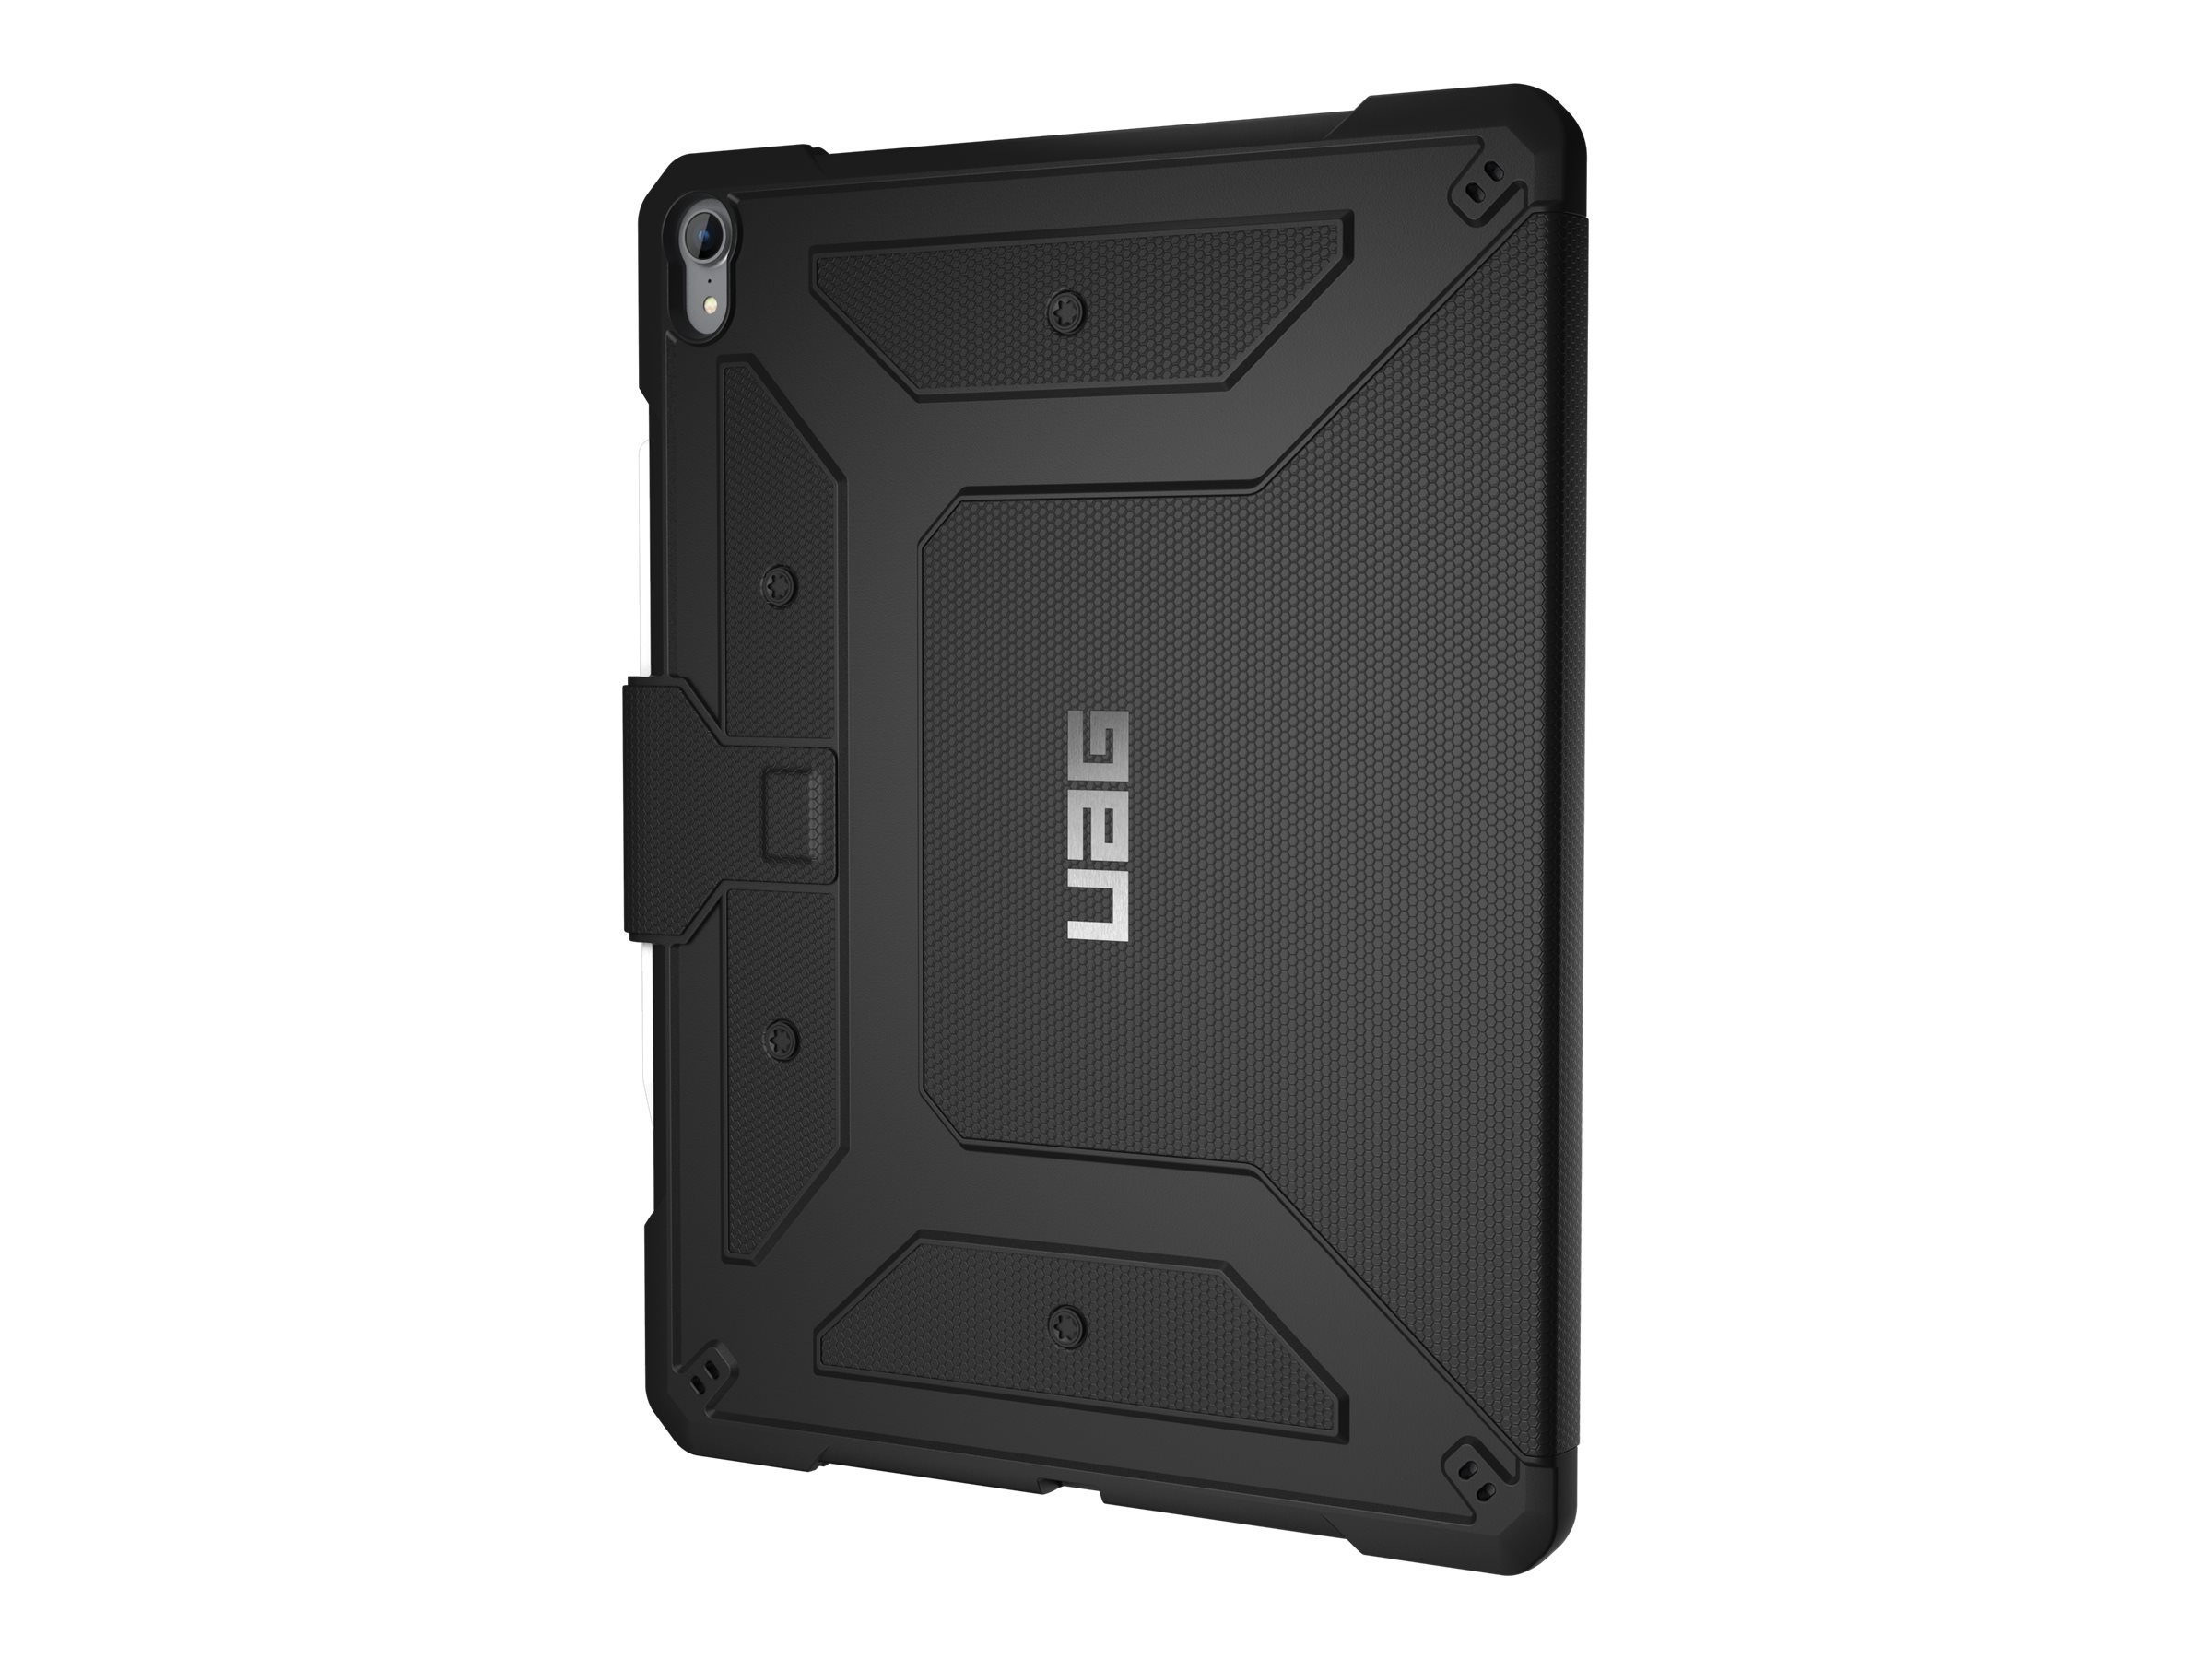 UAG Rugged Case for iPad Pro 12.9-inch (3rd Gen, 2018) - Metropolis Black - Flip-Hülle für Tablet - Schwarz - für Apple 12.9-inc